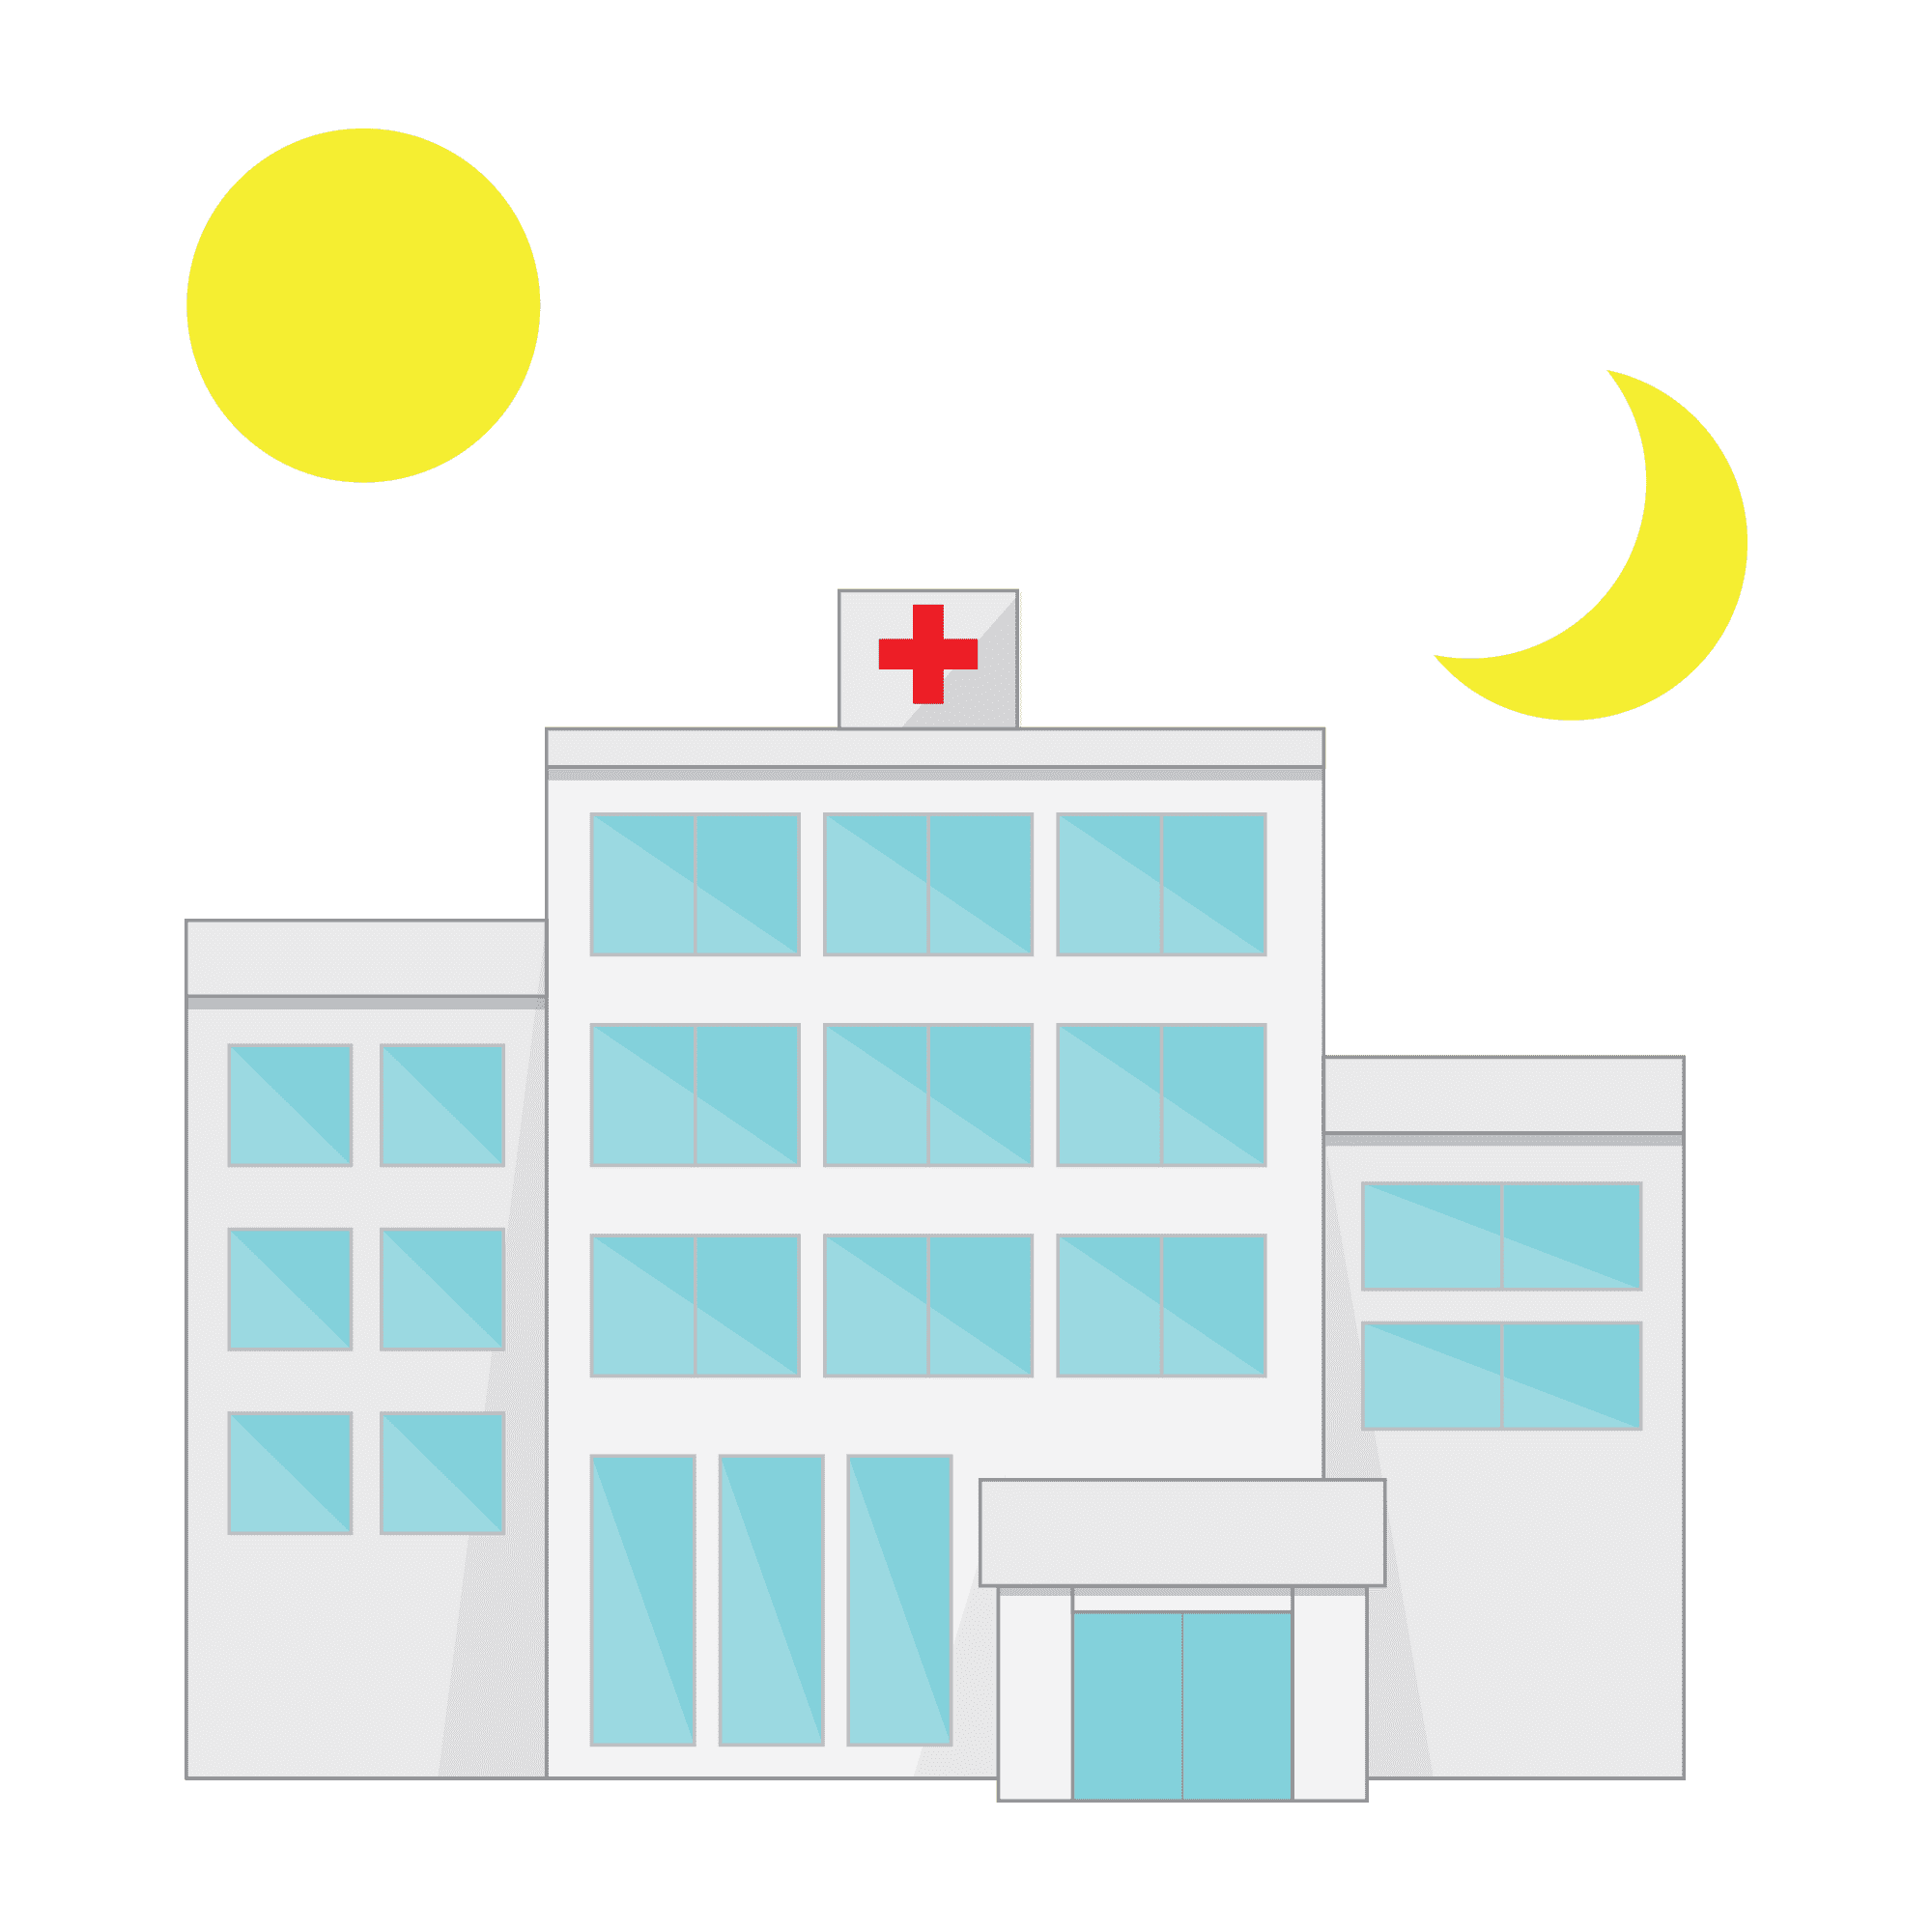 Illustration of a hospital with sun and moon above it